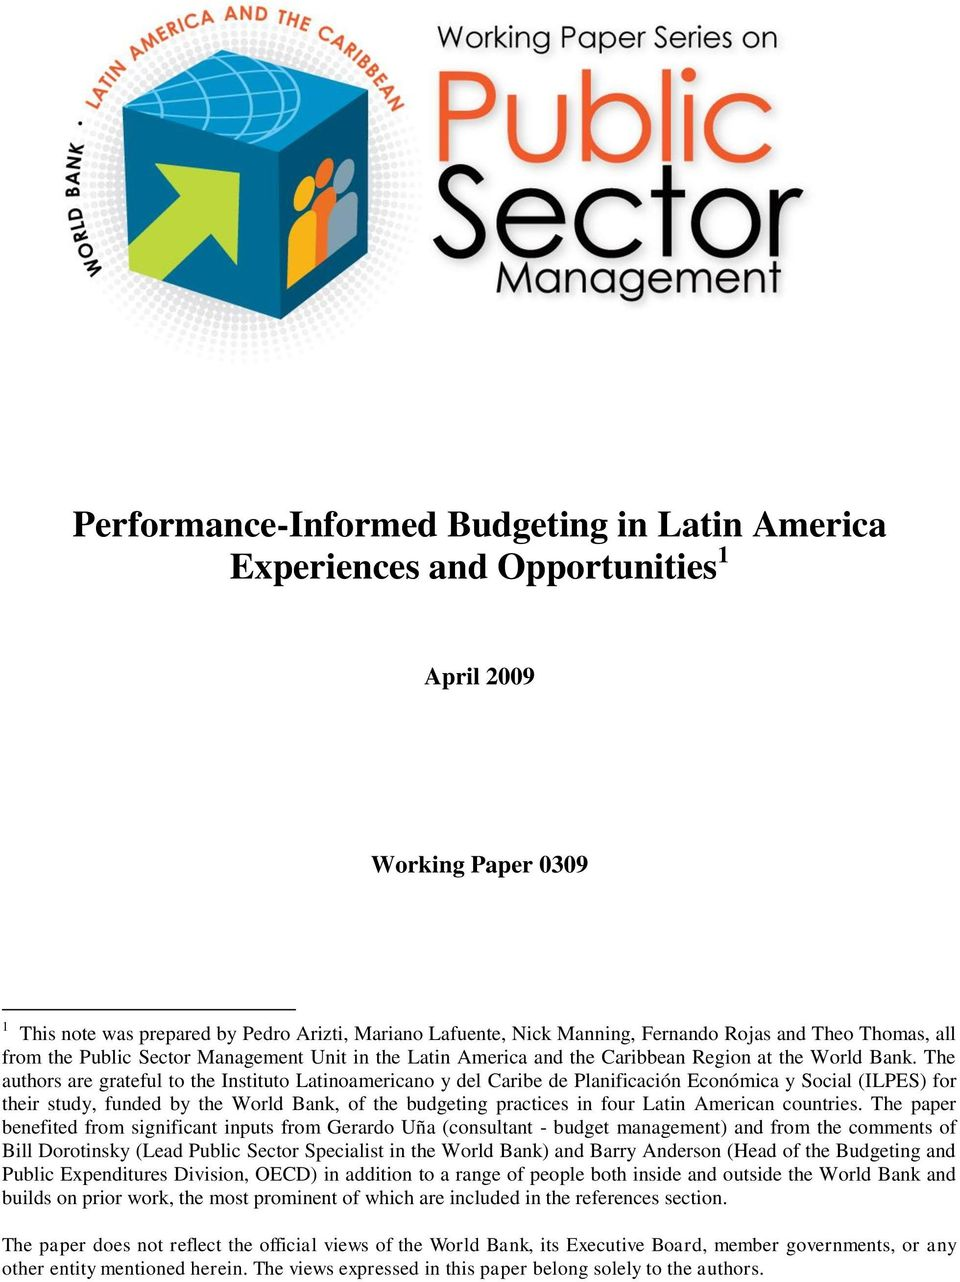 The authors are grateful to the Instituto Latinoamericano y del Caribe de Planificación Económica y Social (ILPES) for their study, funded by the World Bank, of the budgeting practices in four Latin